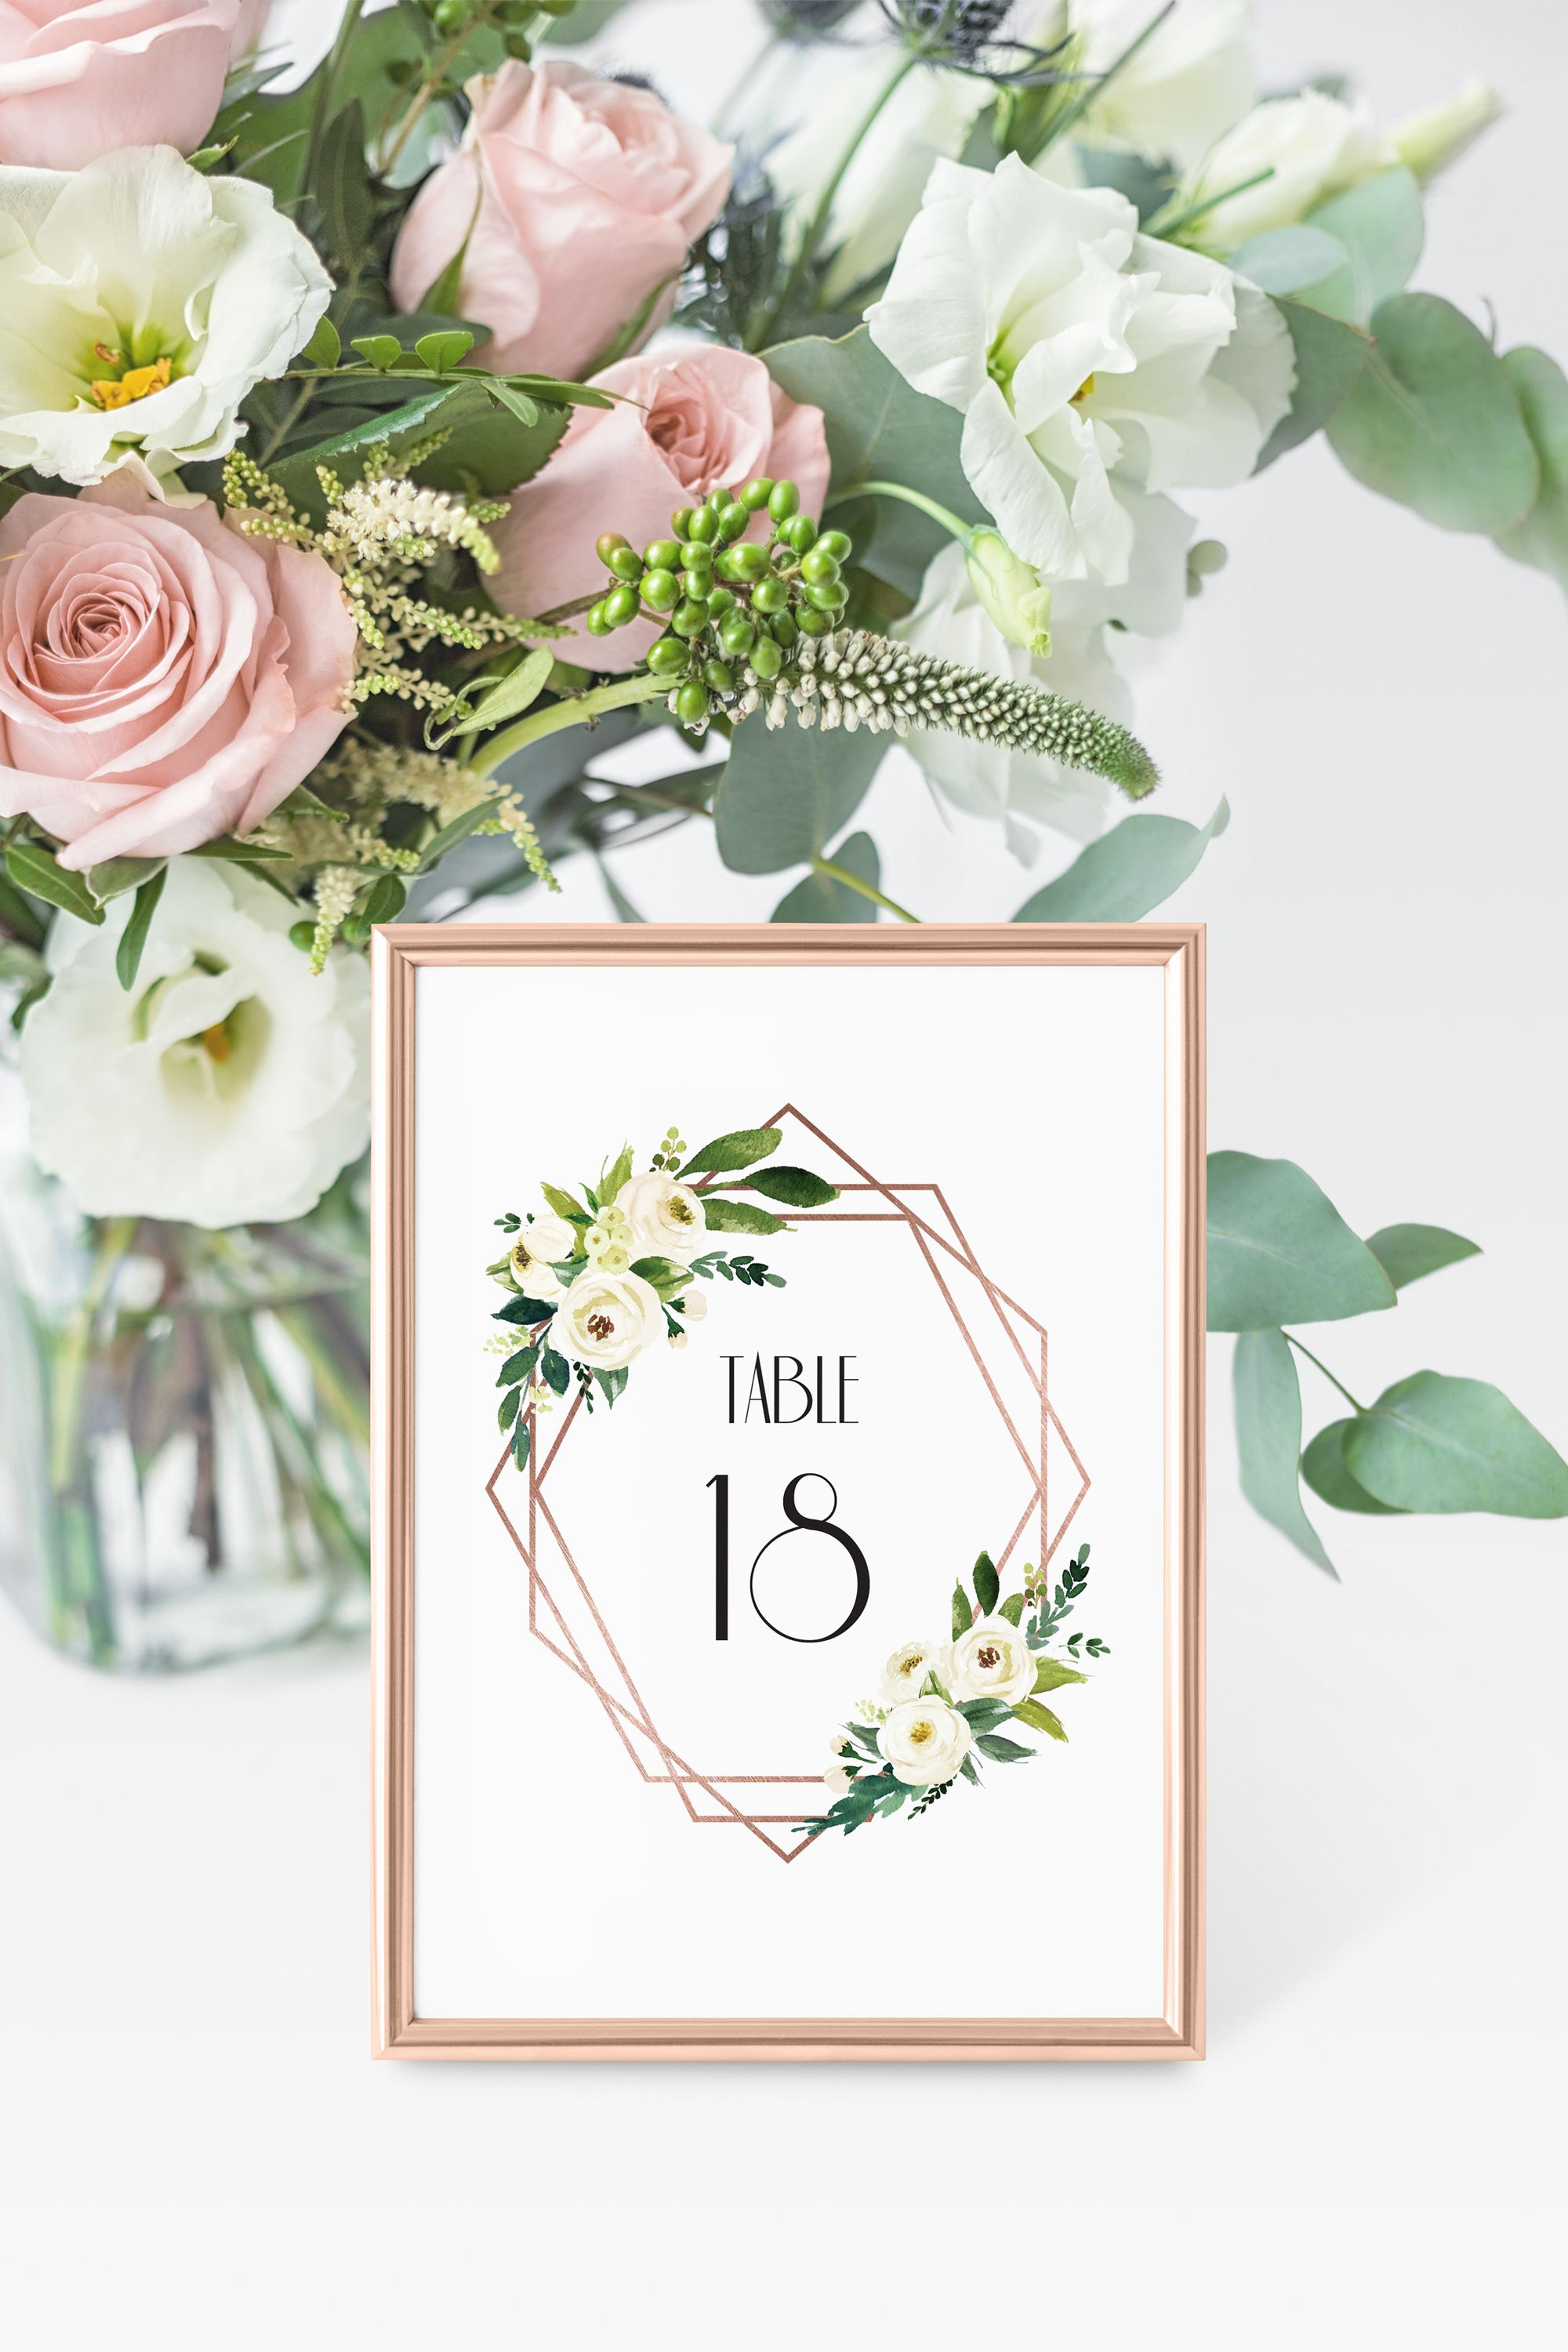 1920s wedding decoration ideas  Printable table numbersrose gold table numbers wedding table